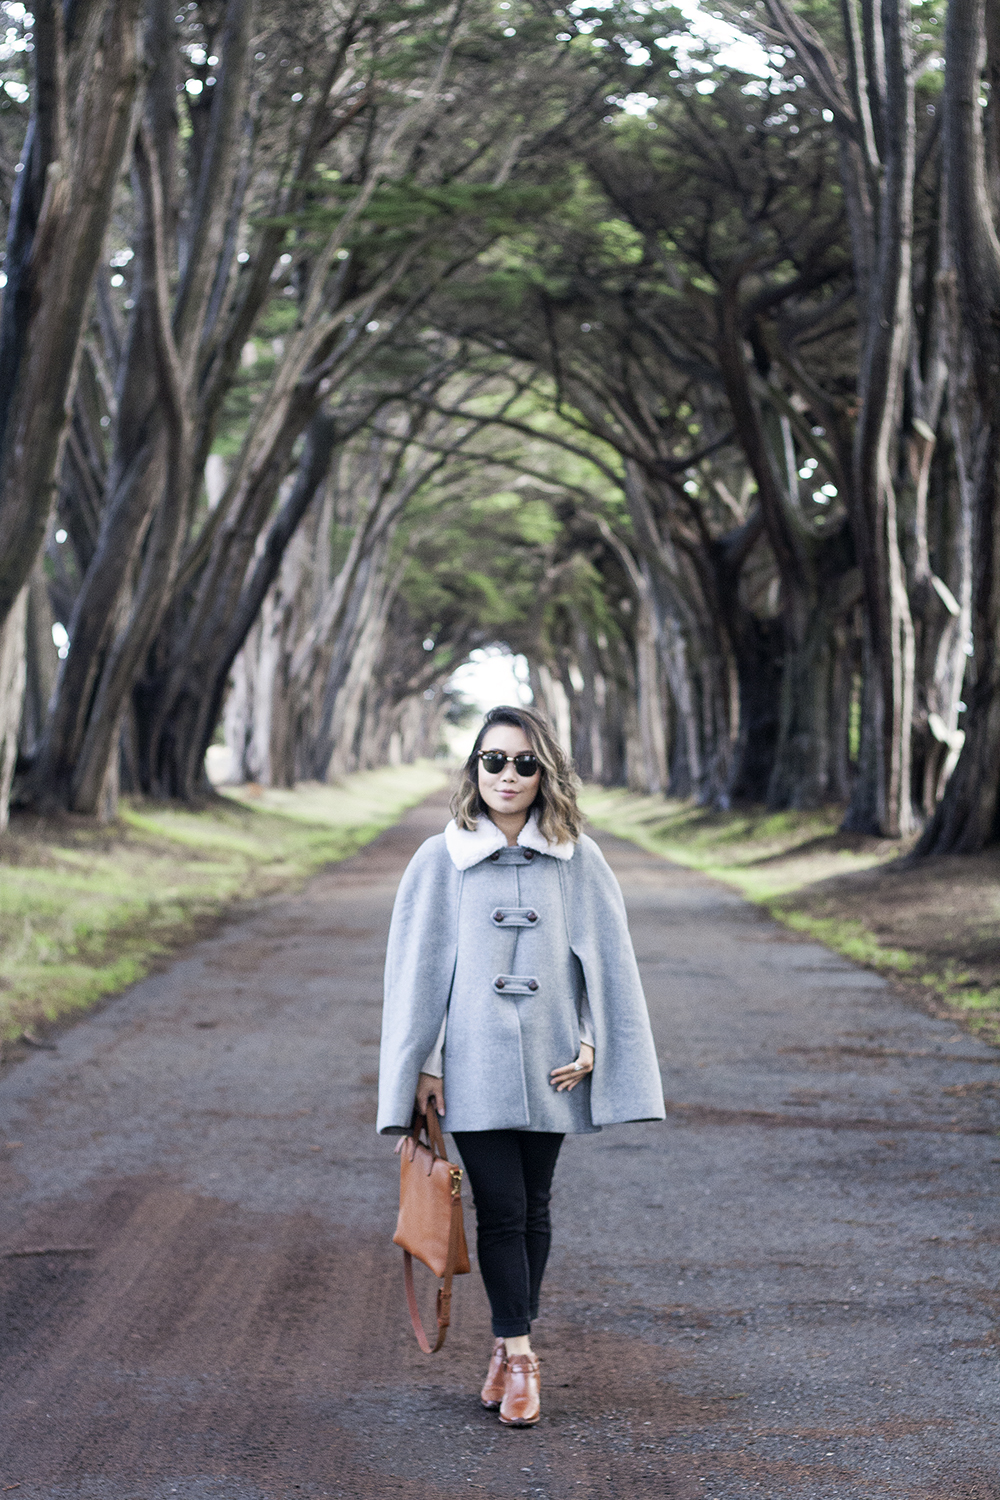 05pointreyes-cypresstreetunnel-madewell-fashion-travel-style